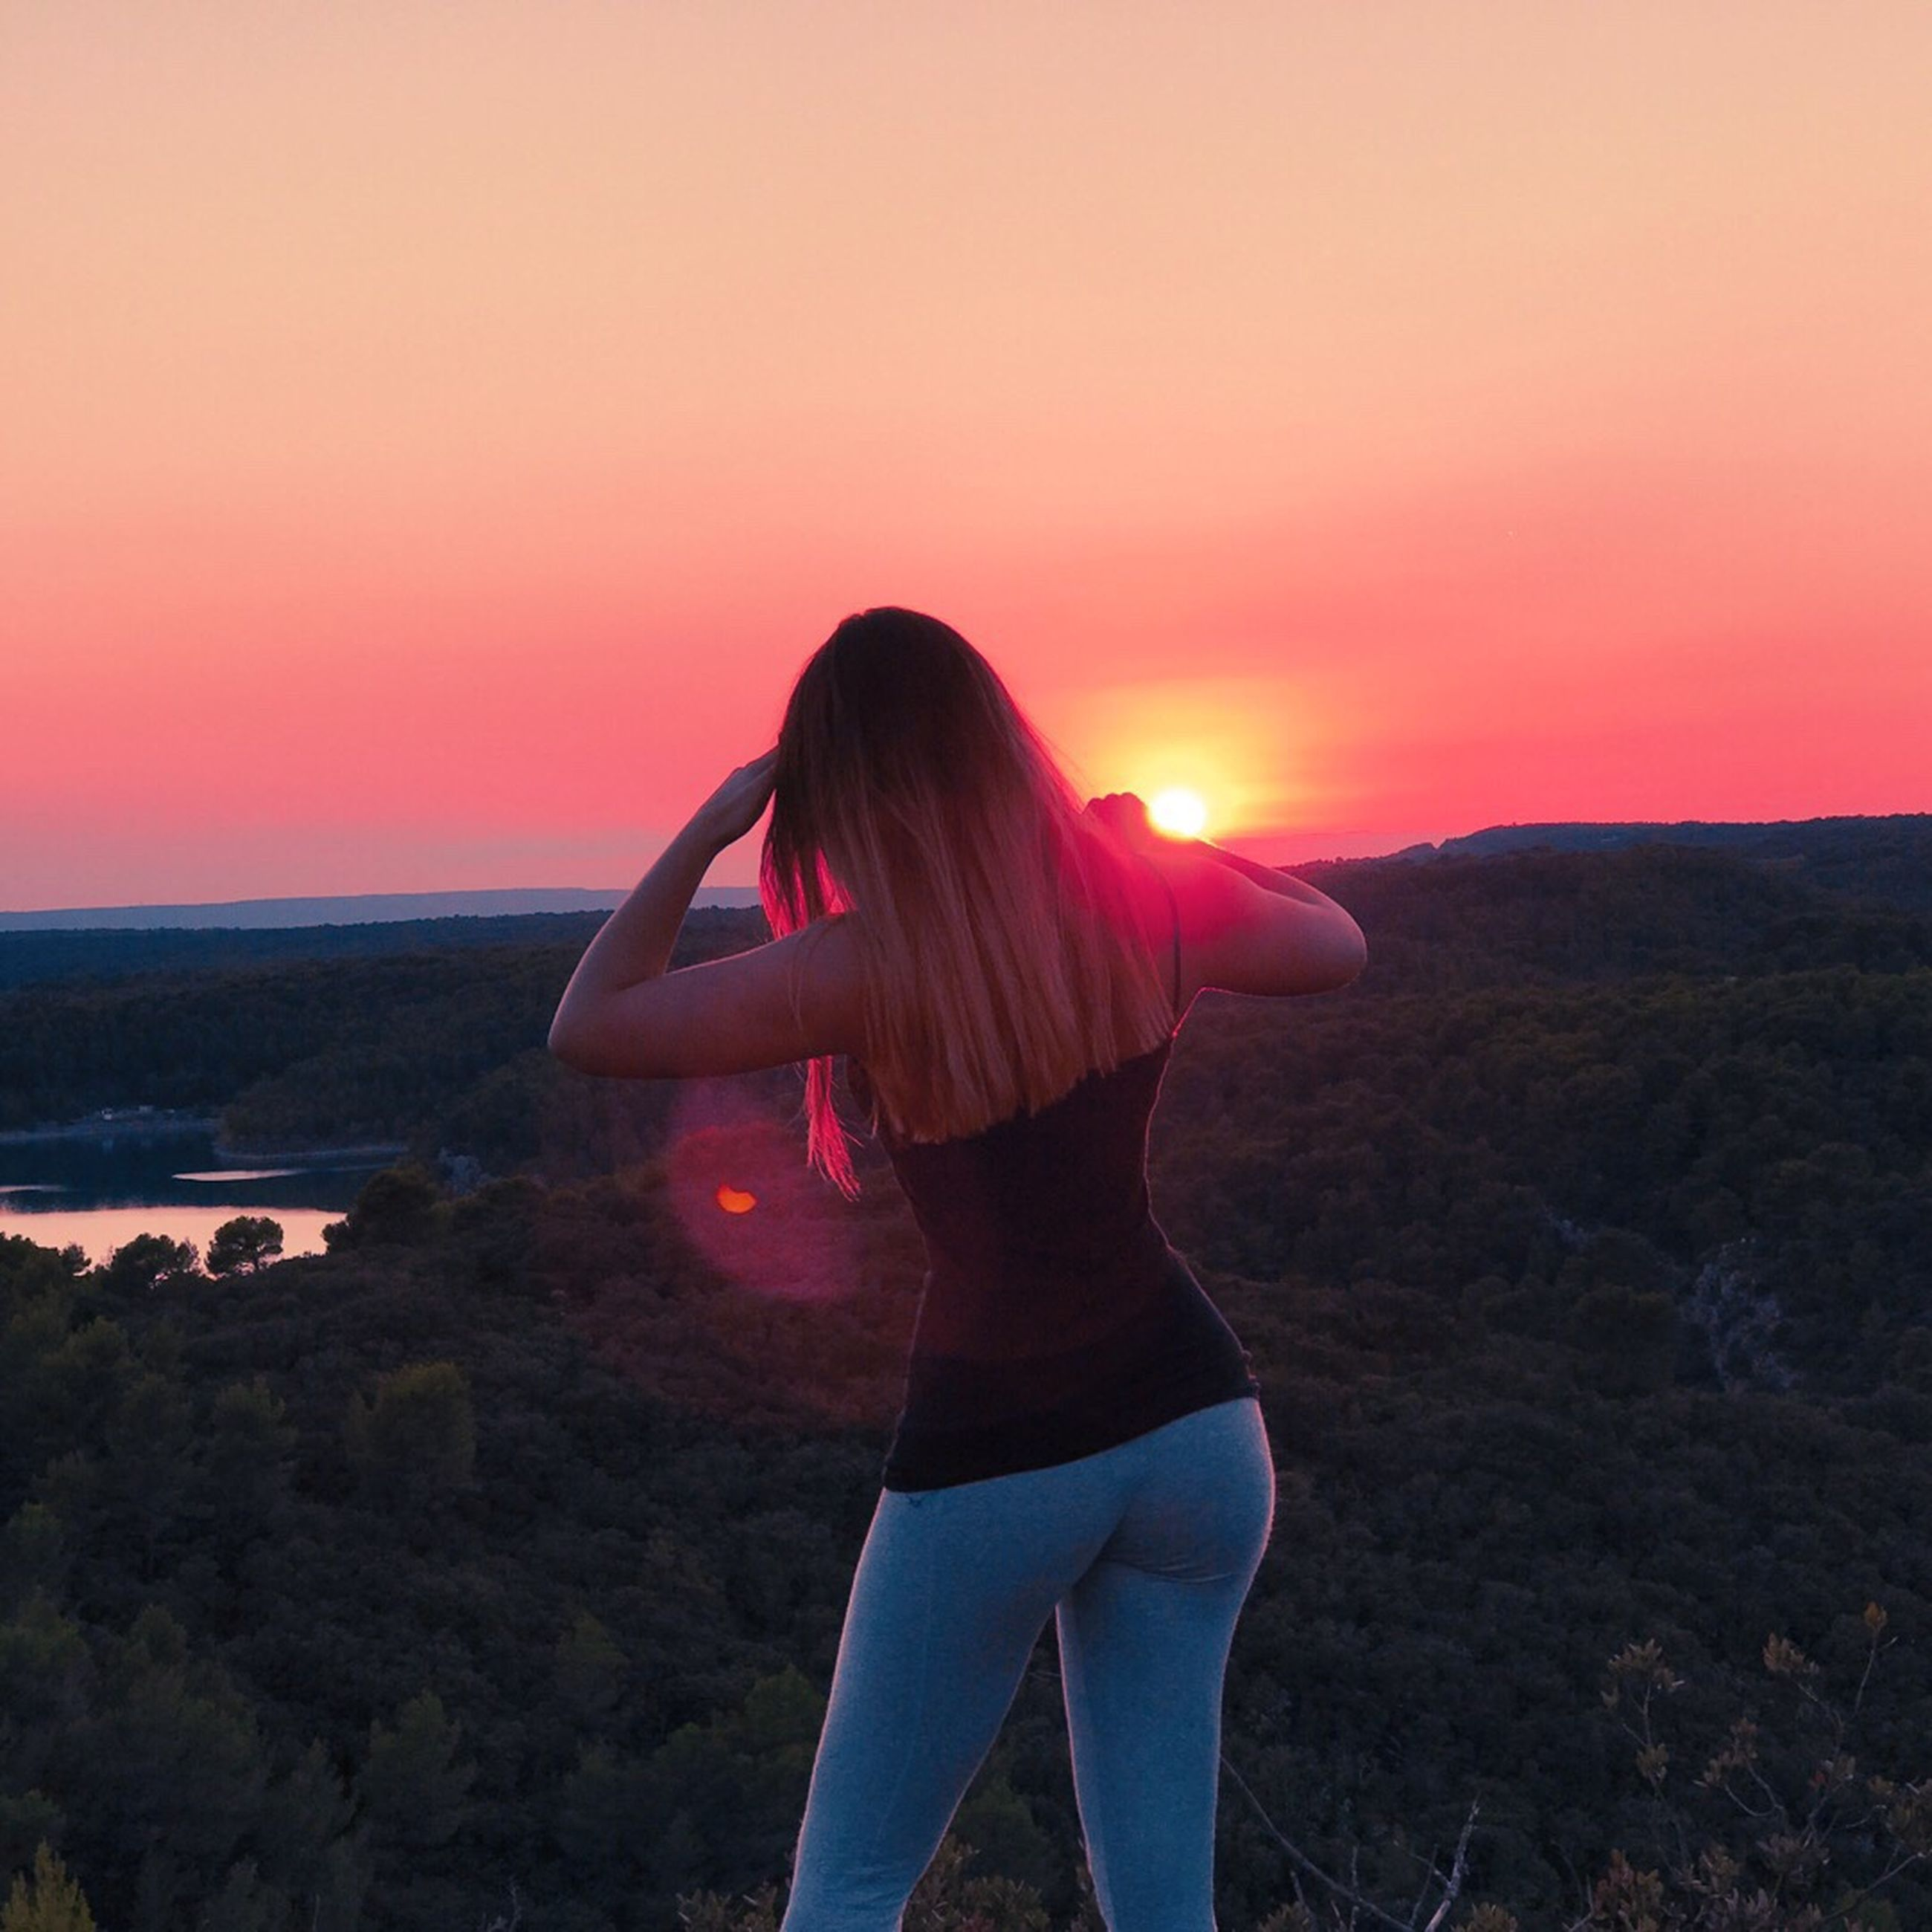 sunset, standing, person, rear view, scenics, sea, long hair, idyllic, horizon over water, water, leisure activity, tranquil scene, tranquility, getting away from it all, beauty in nature, three quarter length, tourist, sun, vacations, weekend activities, remote, cliff, city life, non-urban scene, nature, sky, tourism, majestic, solitude, outdoors